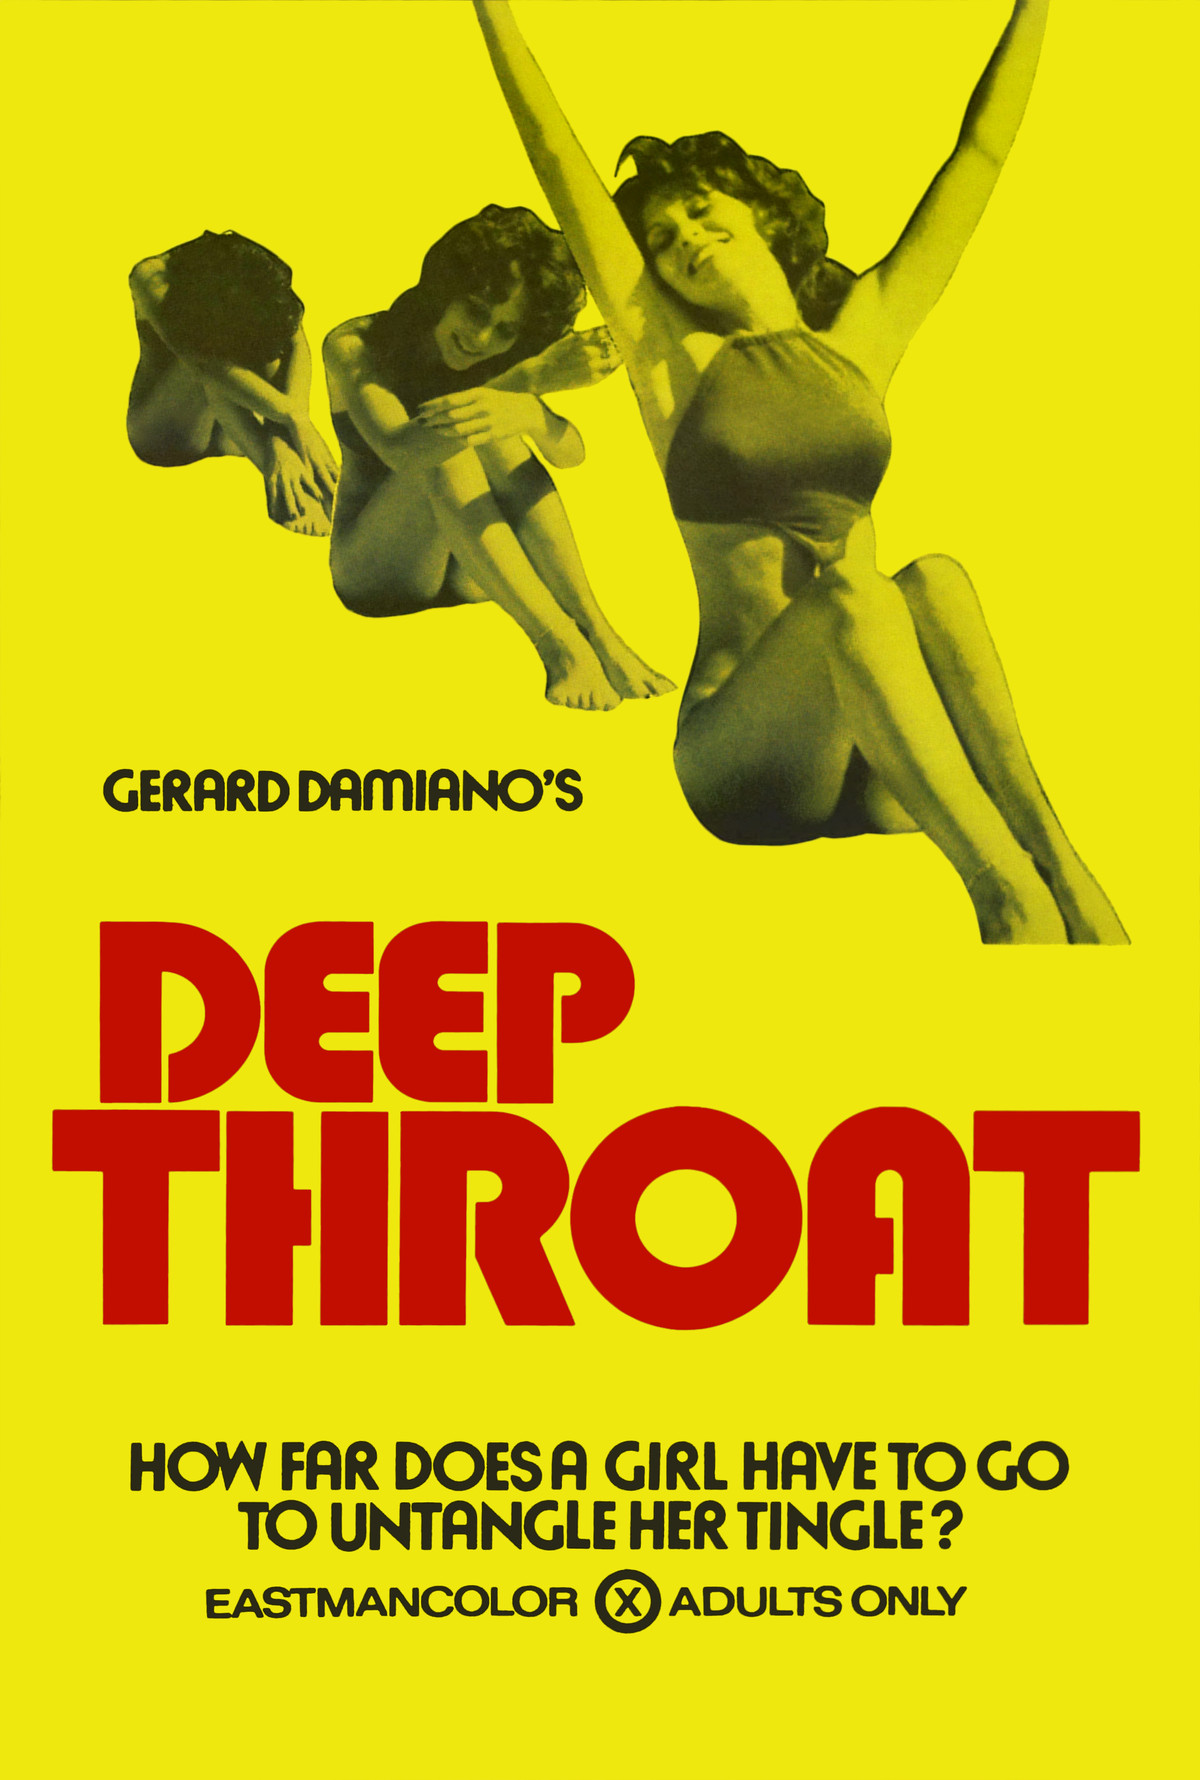 Deep throat ned film